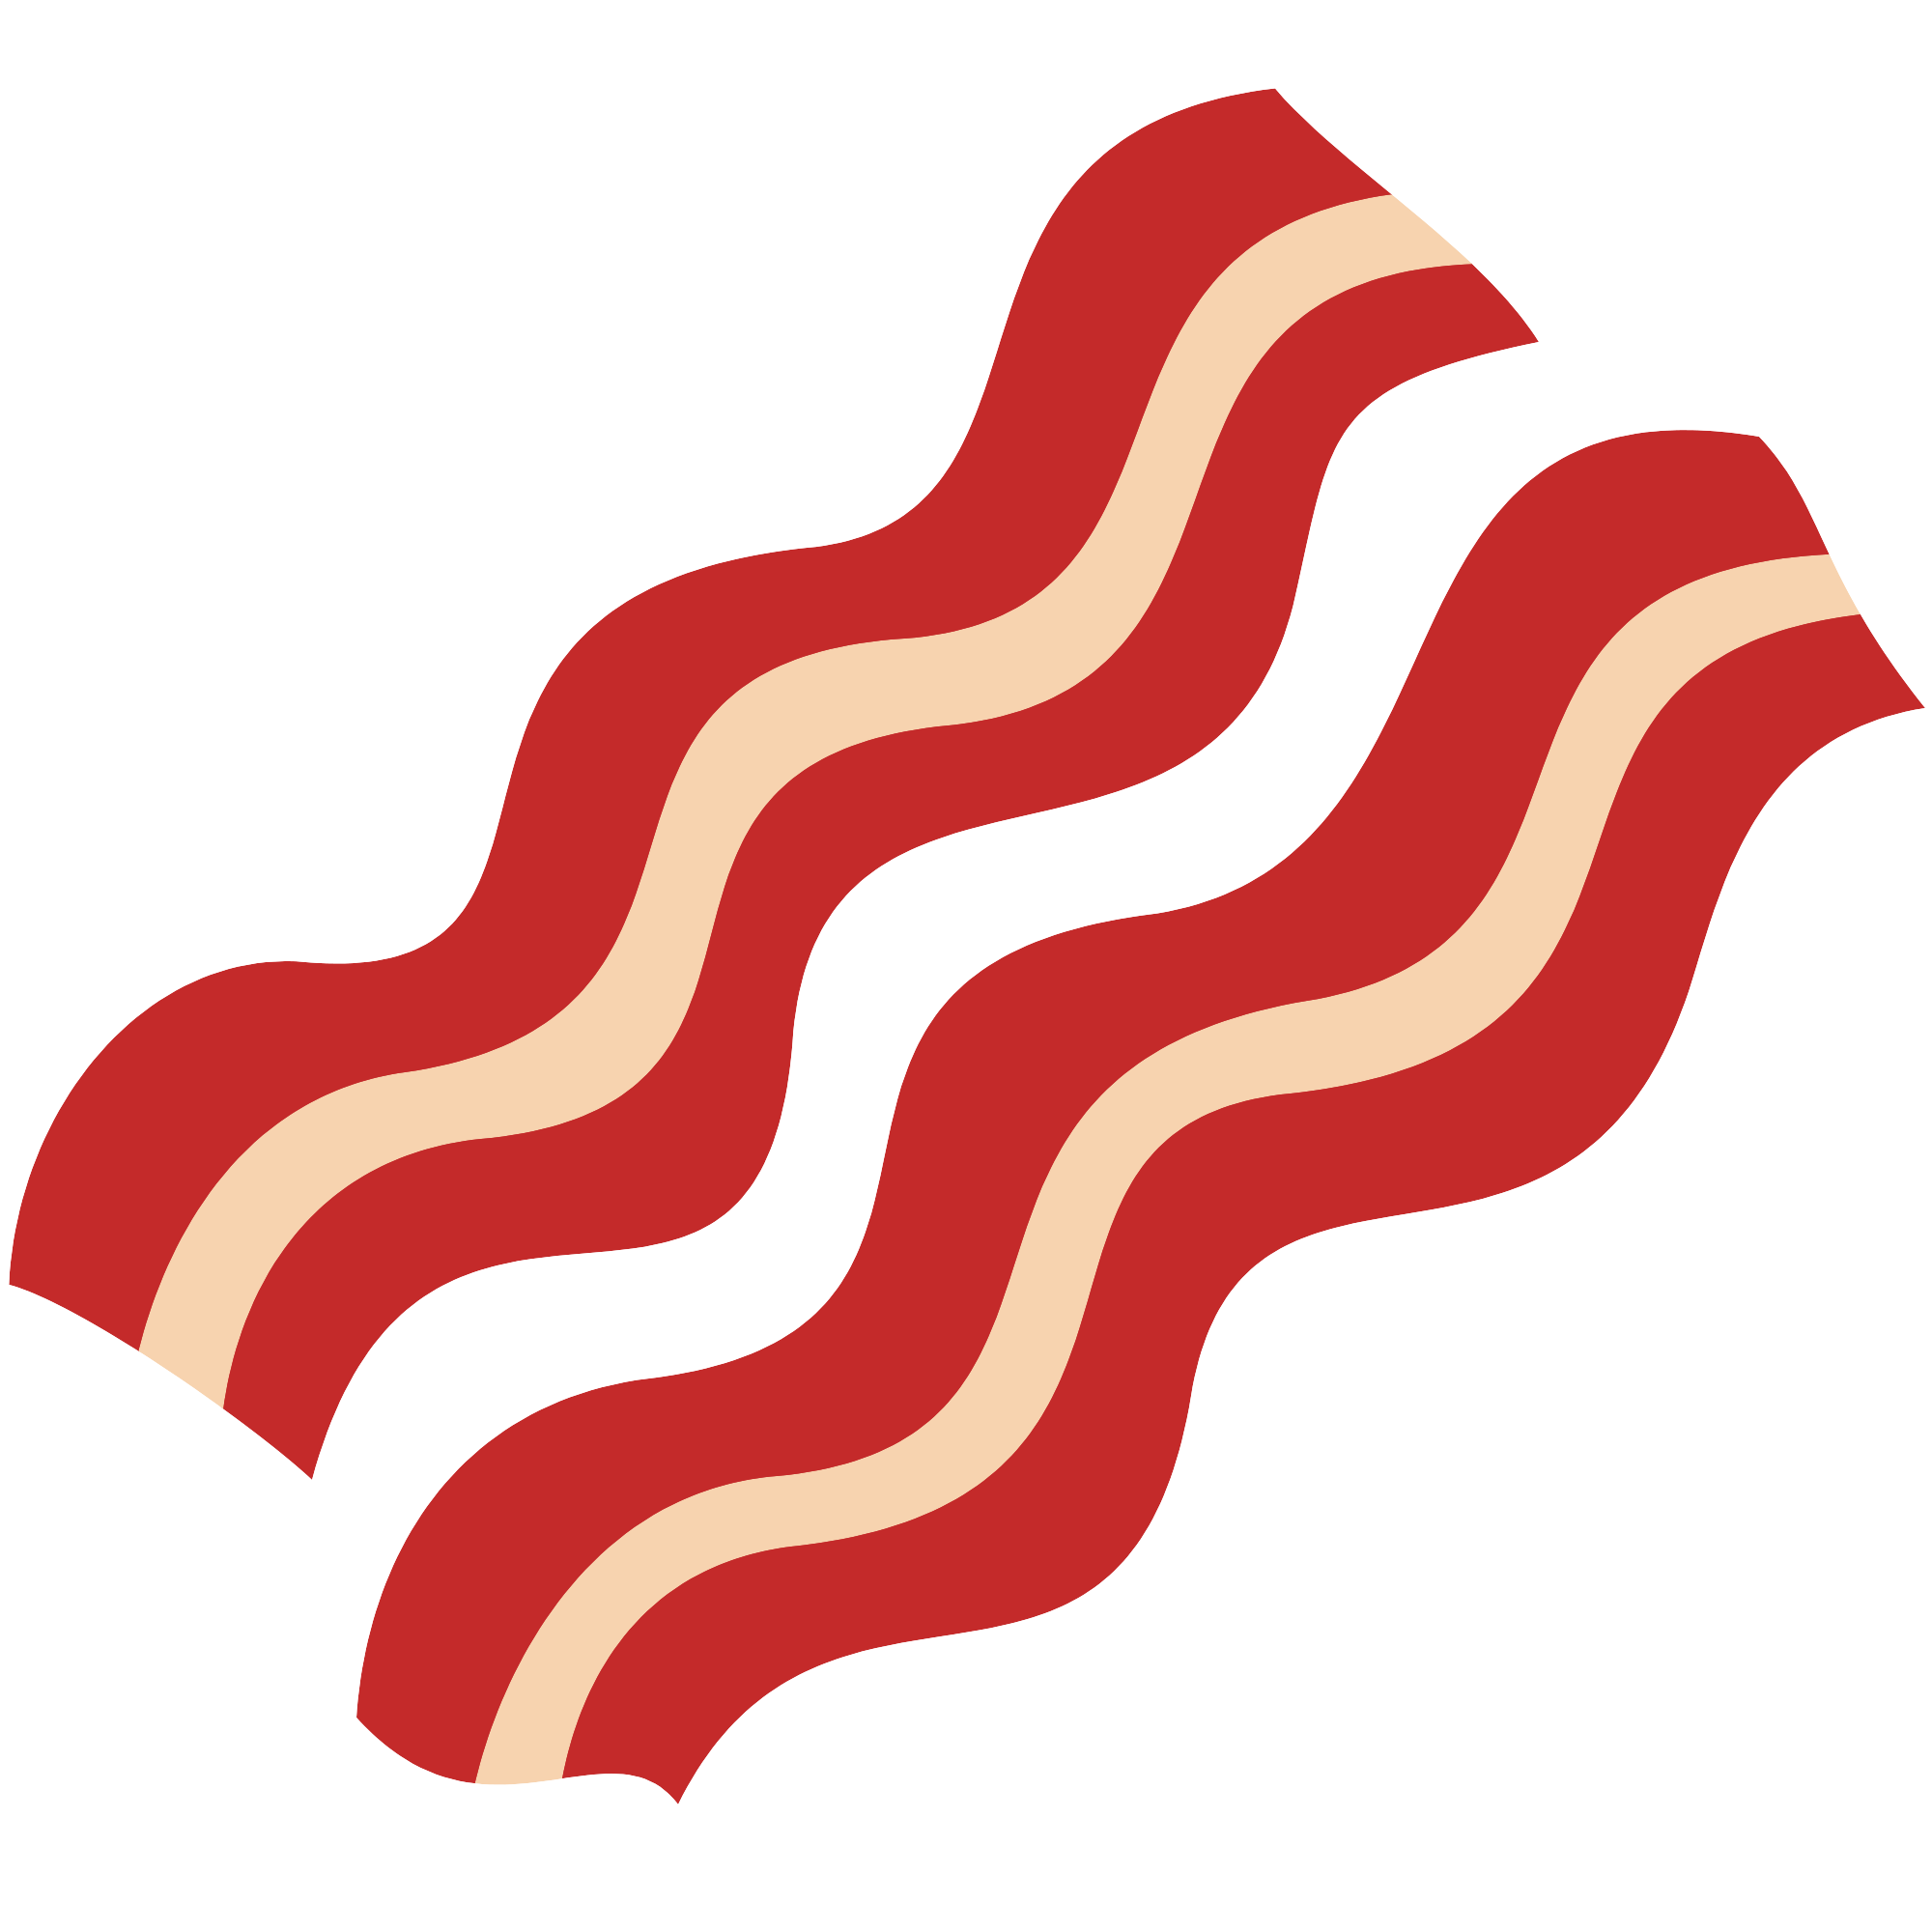 Bacon clipart Free Free Bacon Free Printable